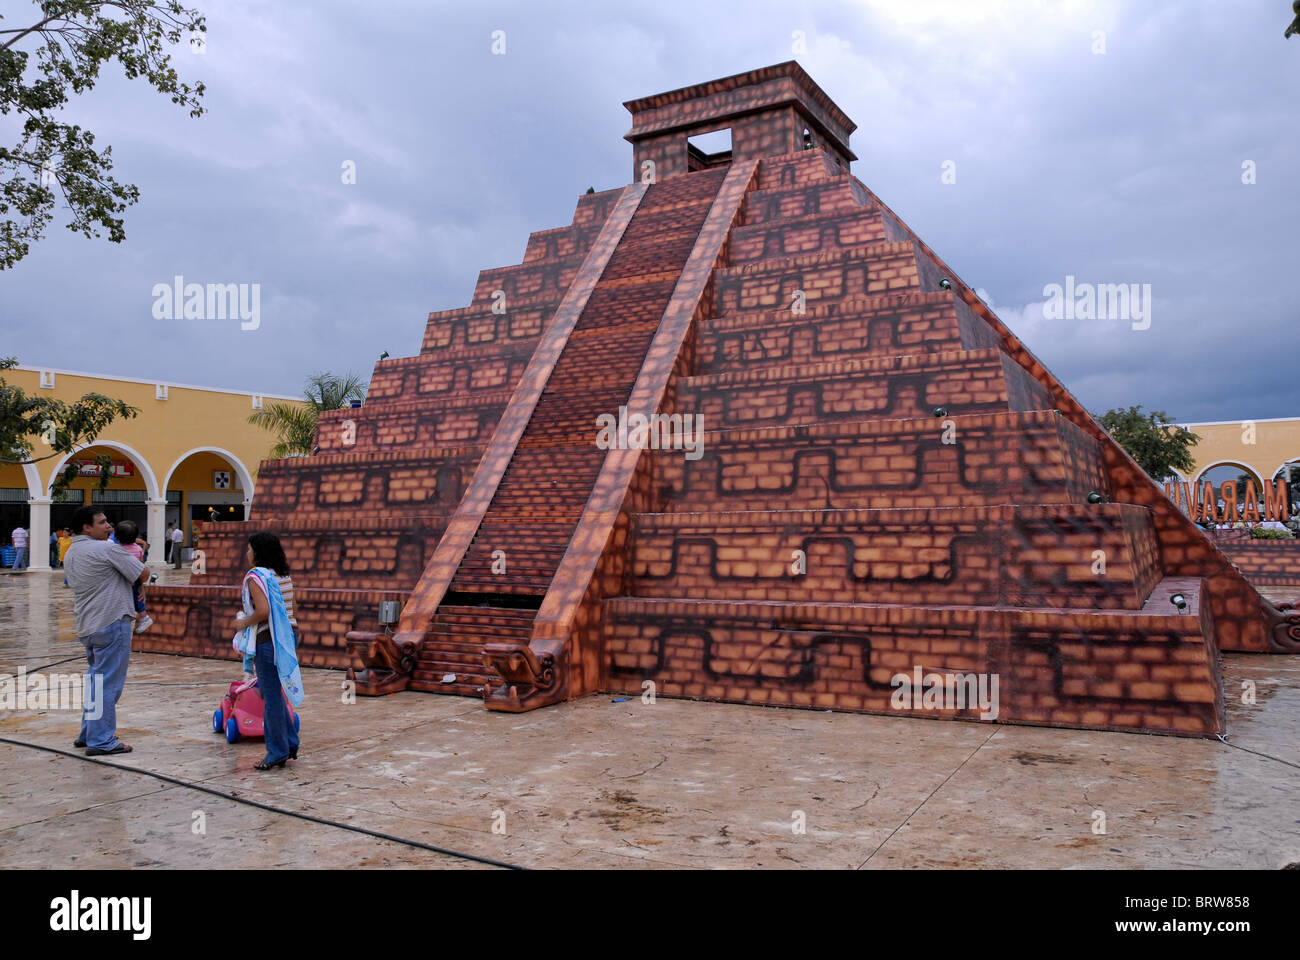 Xmatkuil, Yucatan / Mexico - November 12: A family stands by a replica of the Chichen Itza pyramid at the Xmatkuil Stock Photo